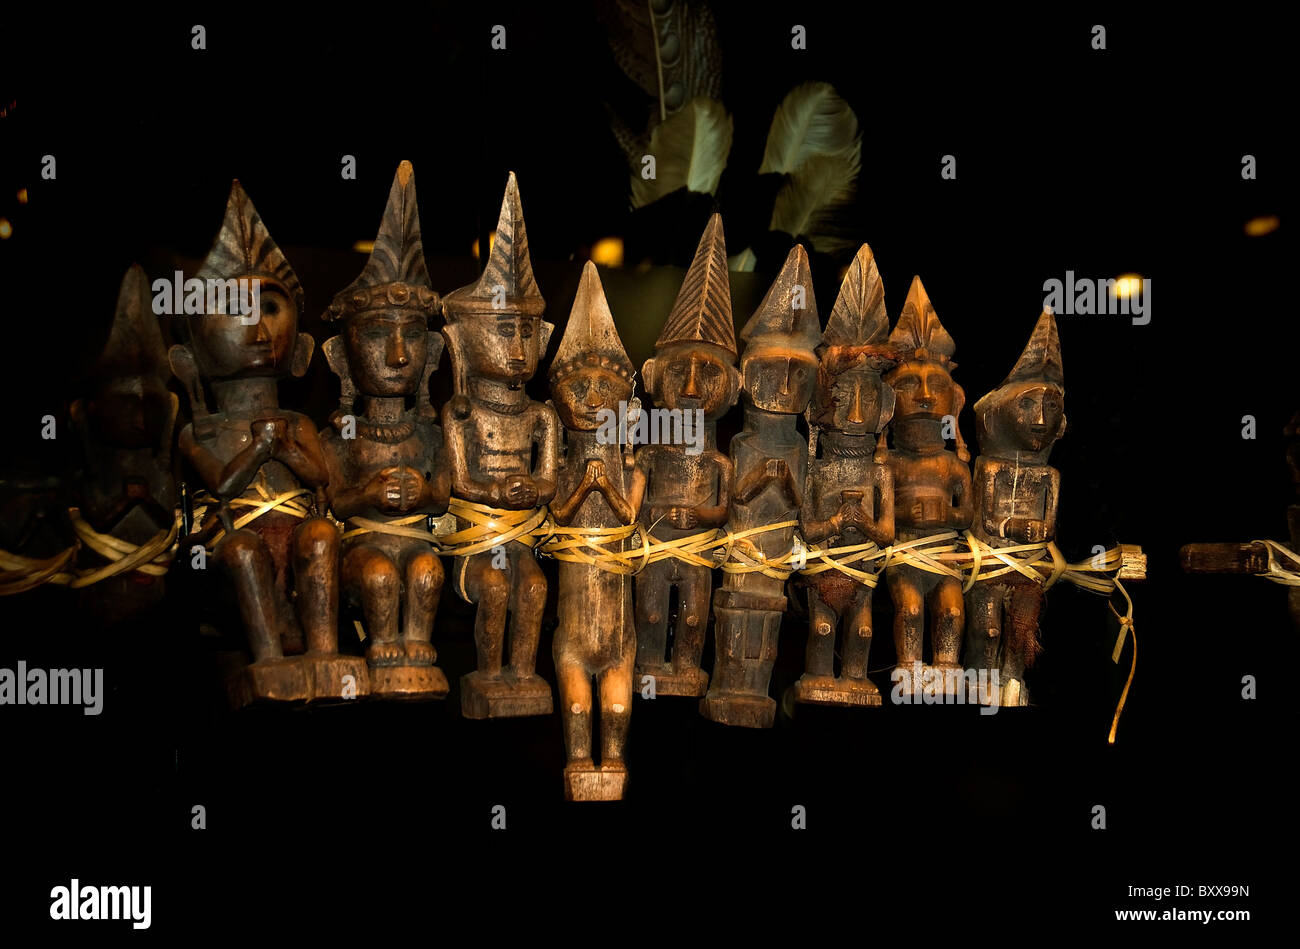 Row Ancestral Images 19th Cent Nias Indonesian Sumatra Indonesia - Stock Image